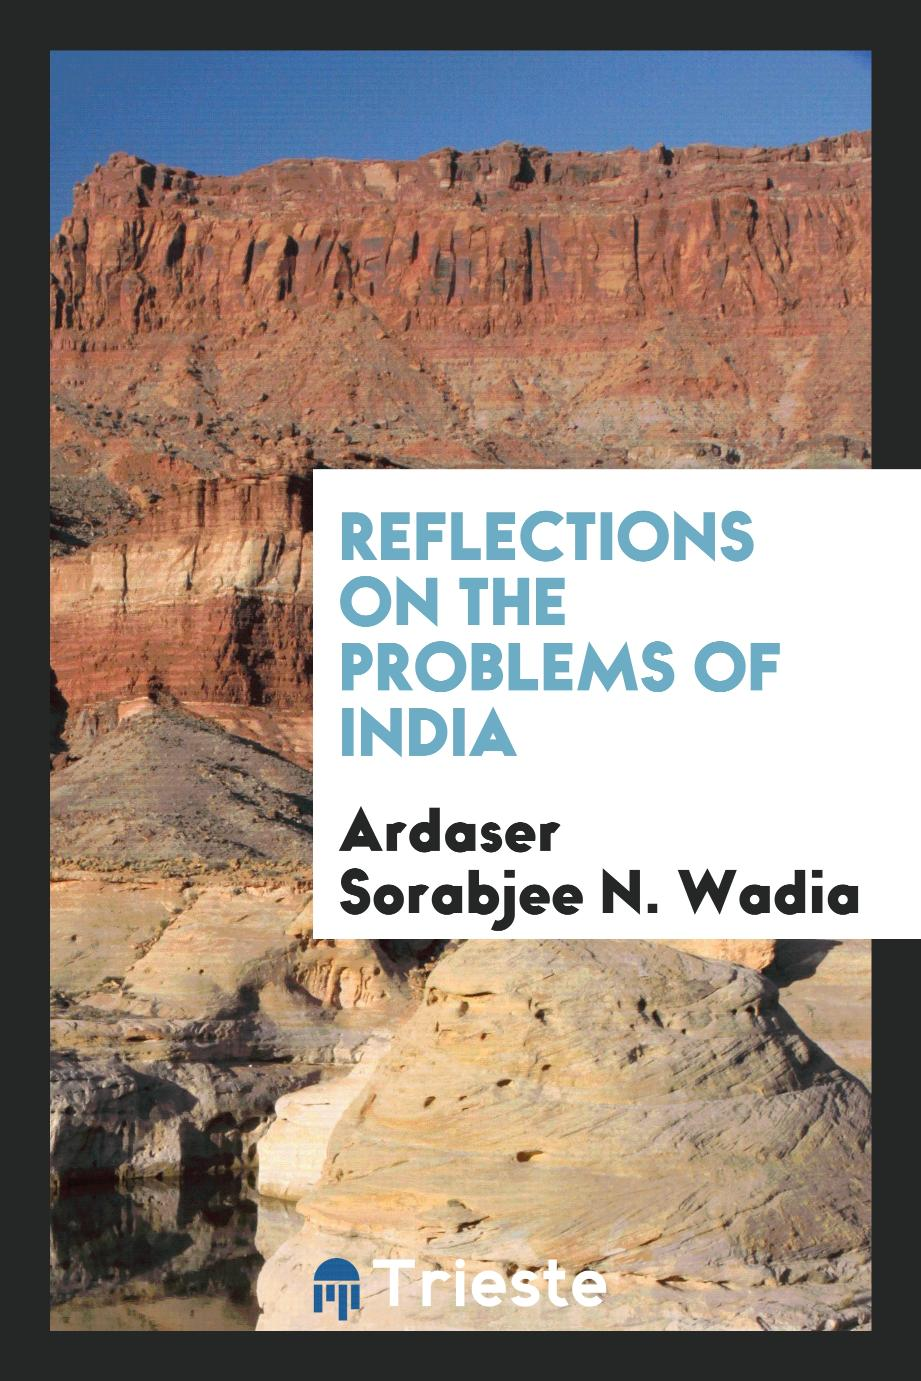 Ardaser Sorabjee N. Wadia - Reflections on the problems of India